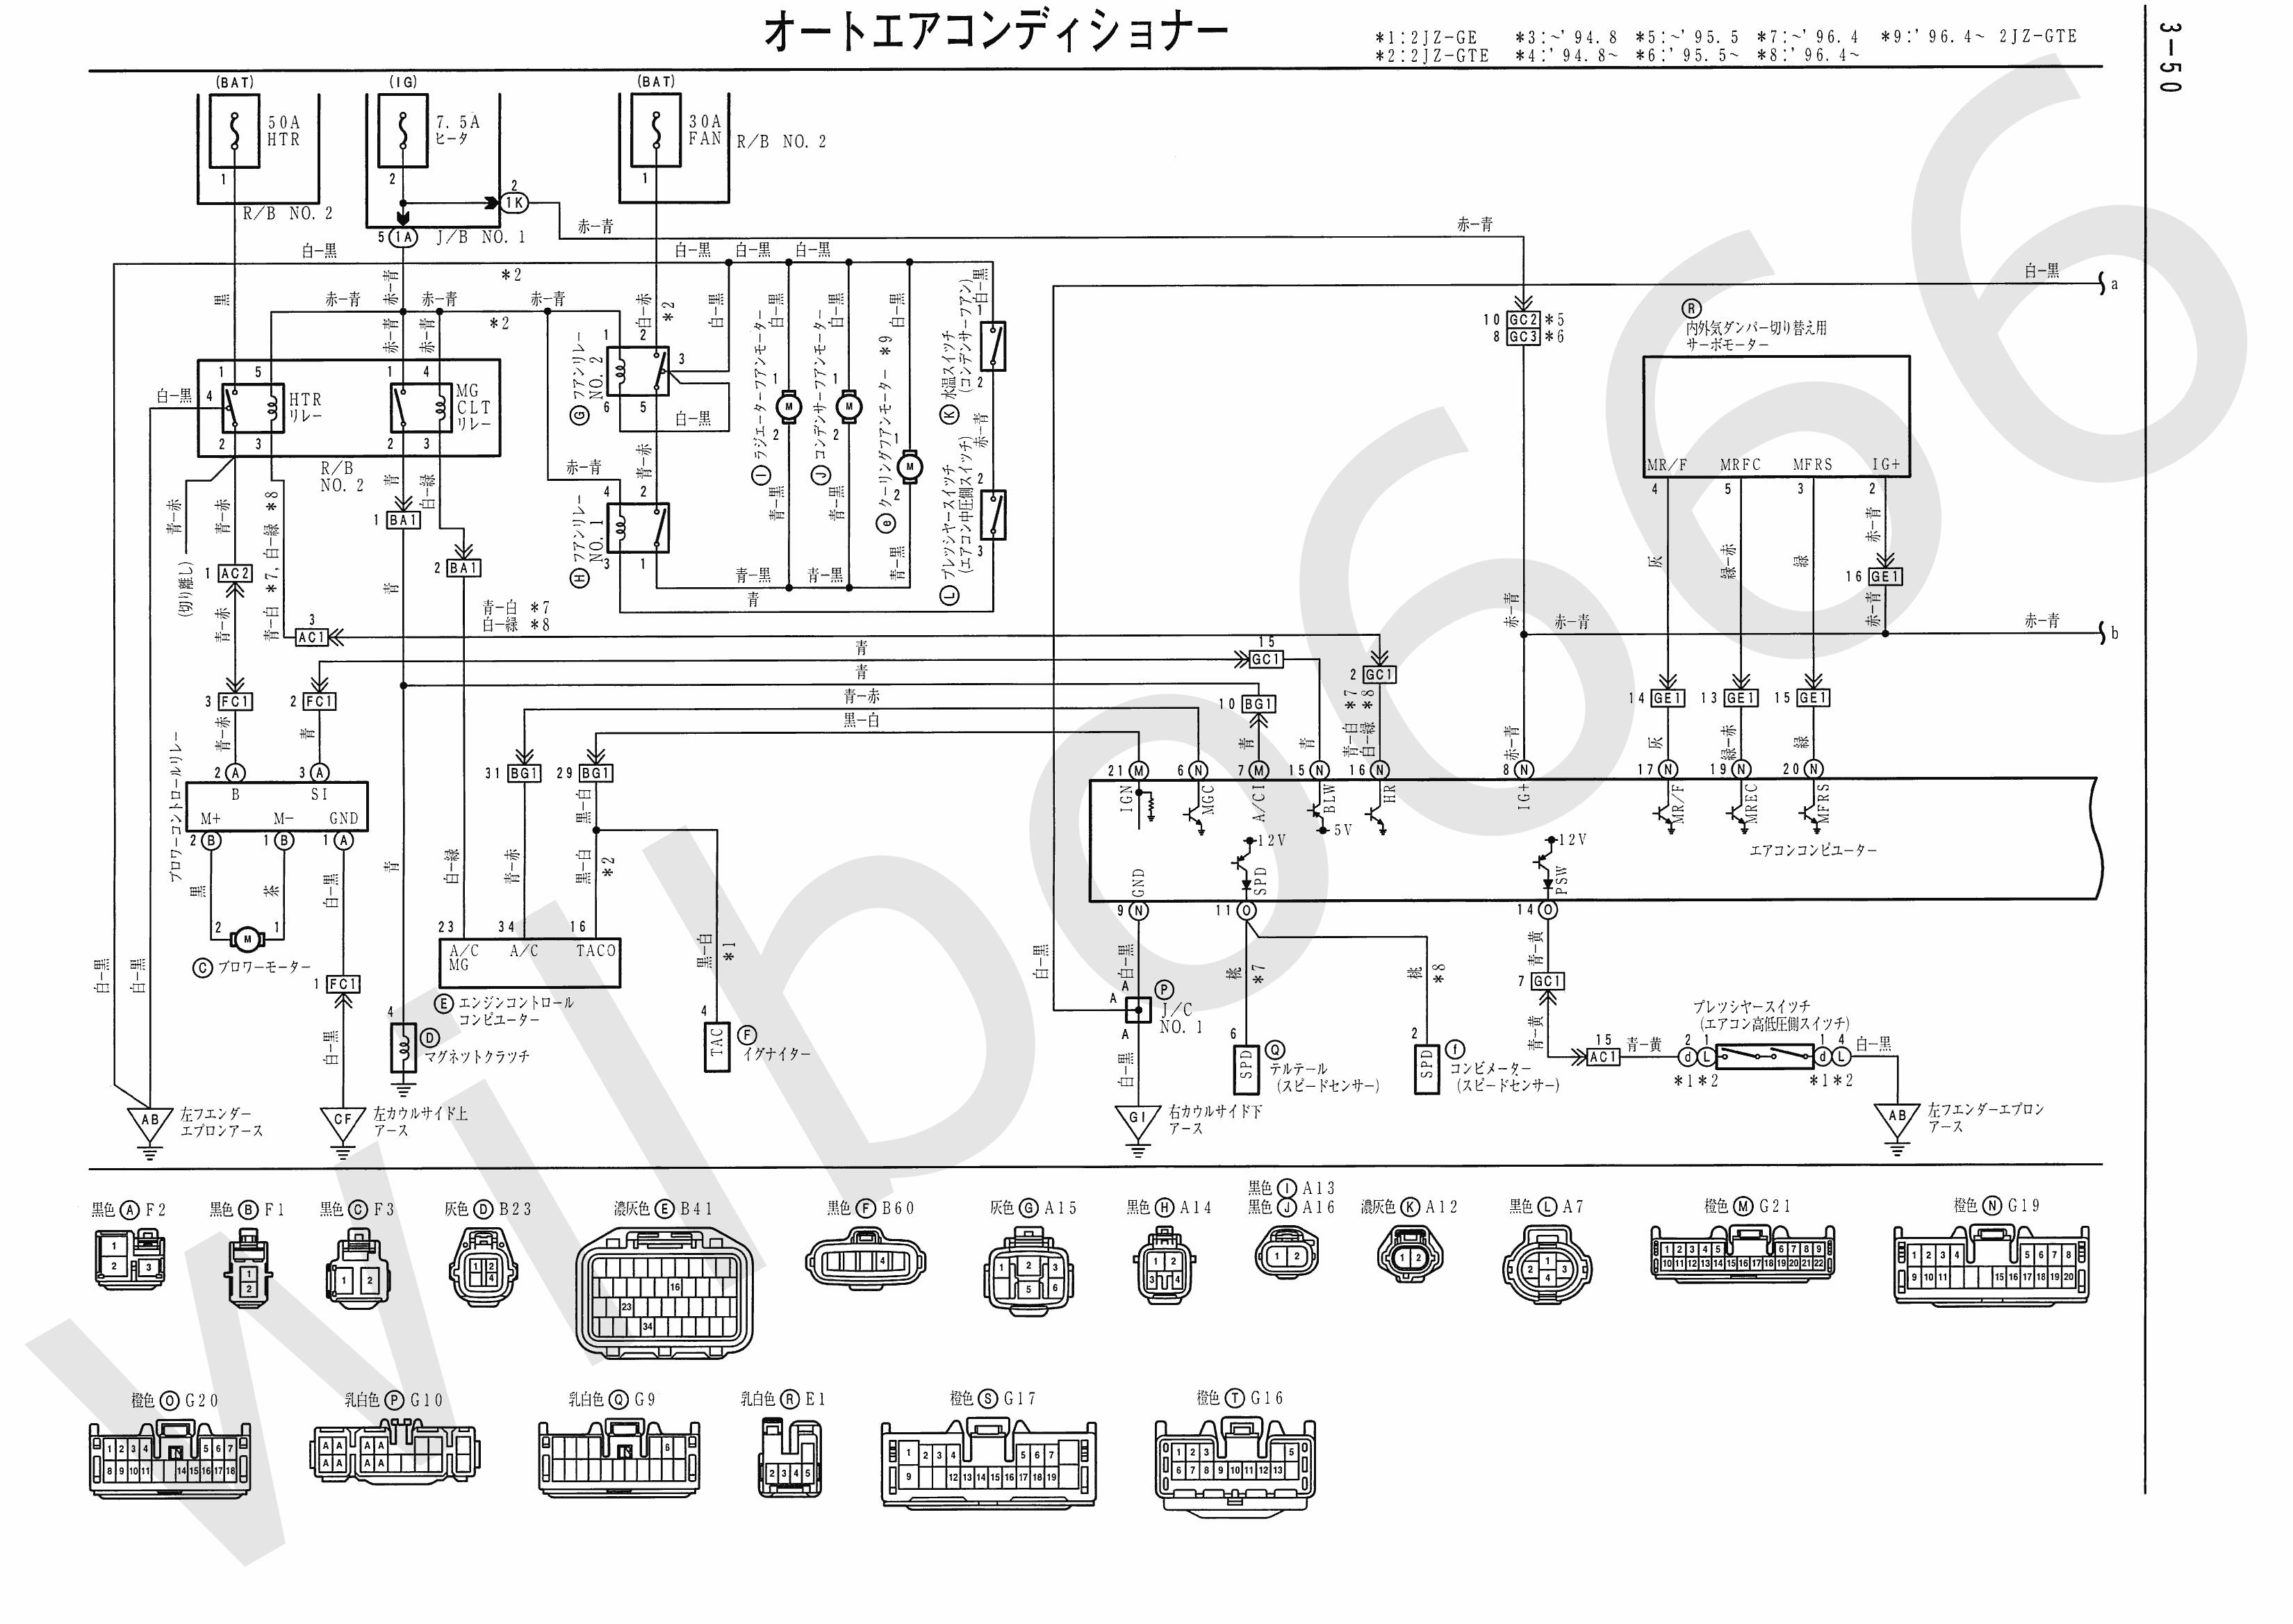 Wiring Diagram Toyota Supra : Wiring diagrams toyota supra imageresizertool